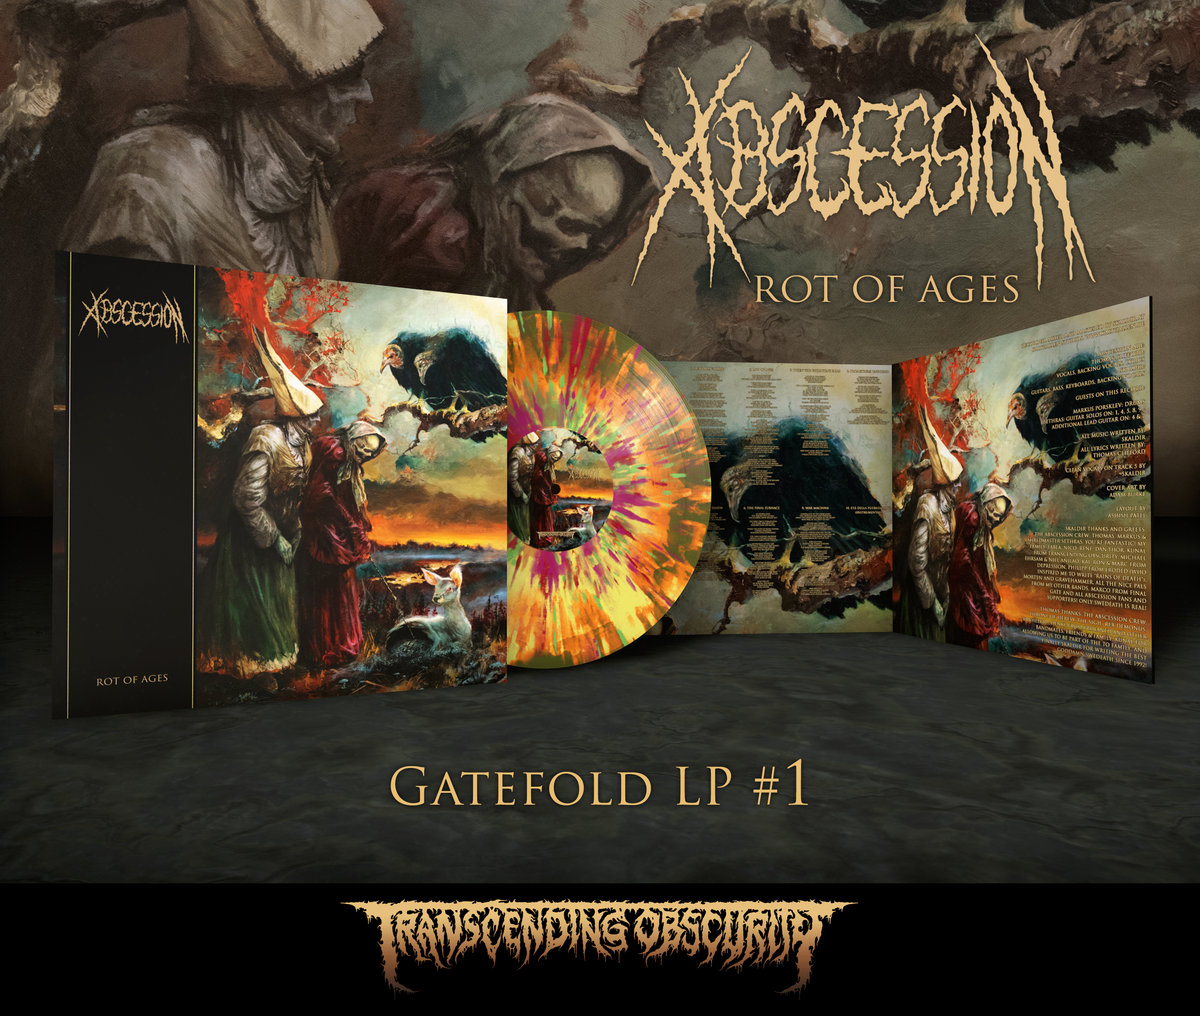 ABSCESSION - Rot of Ages Gatefold LP with Metallic Effect and Embossing (Limited to 100 per variant)